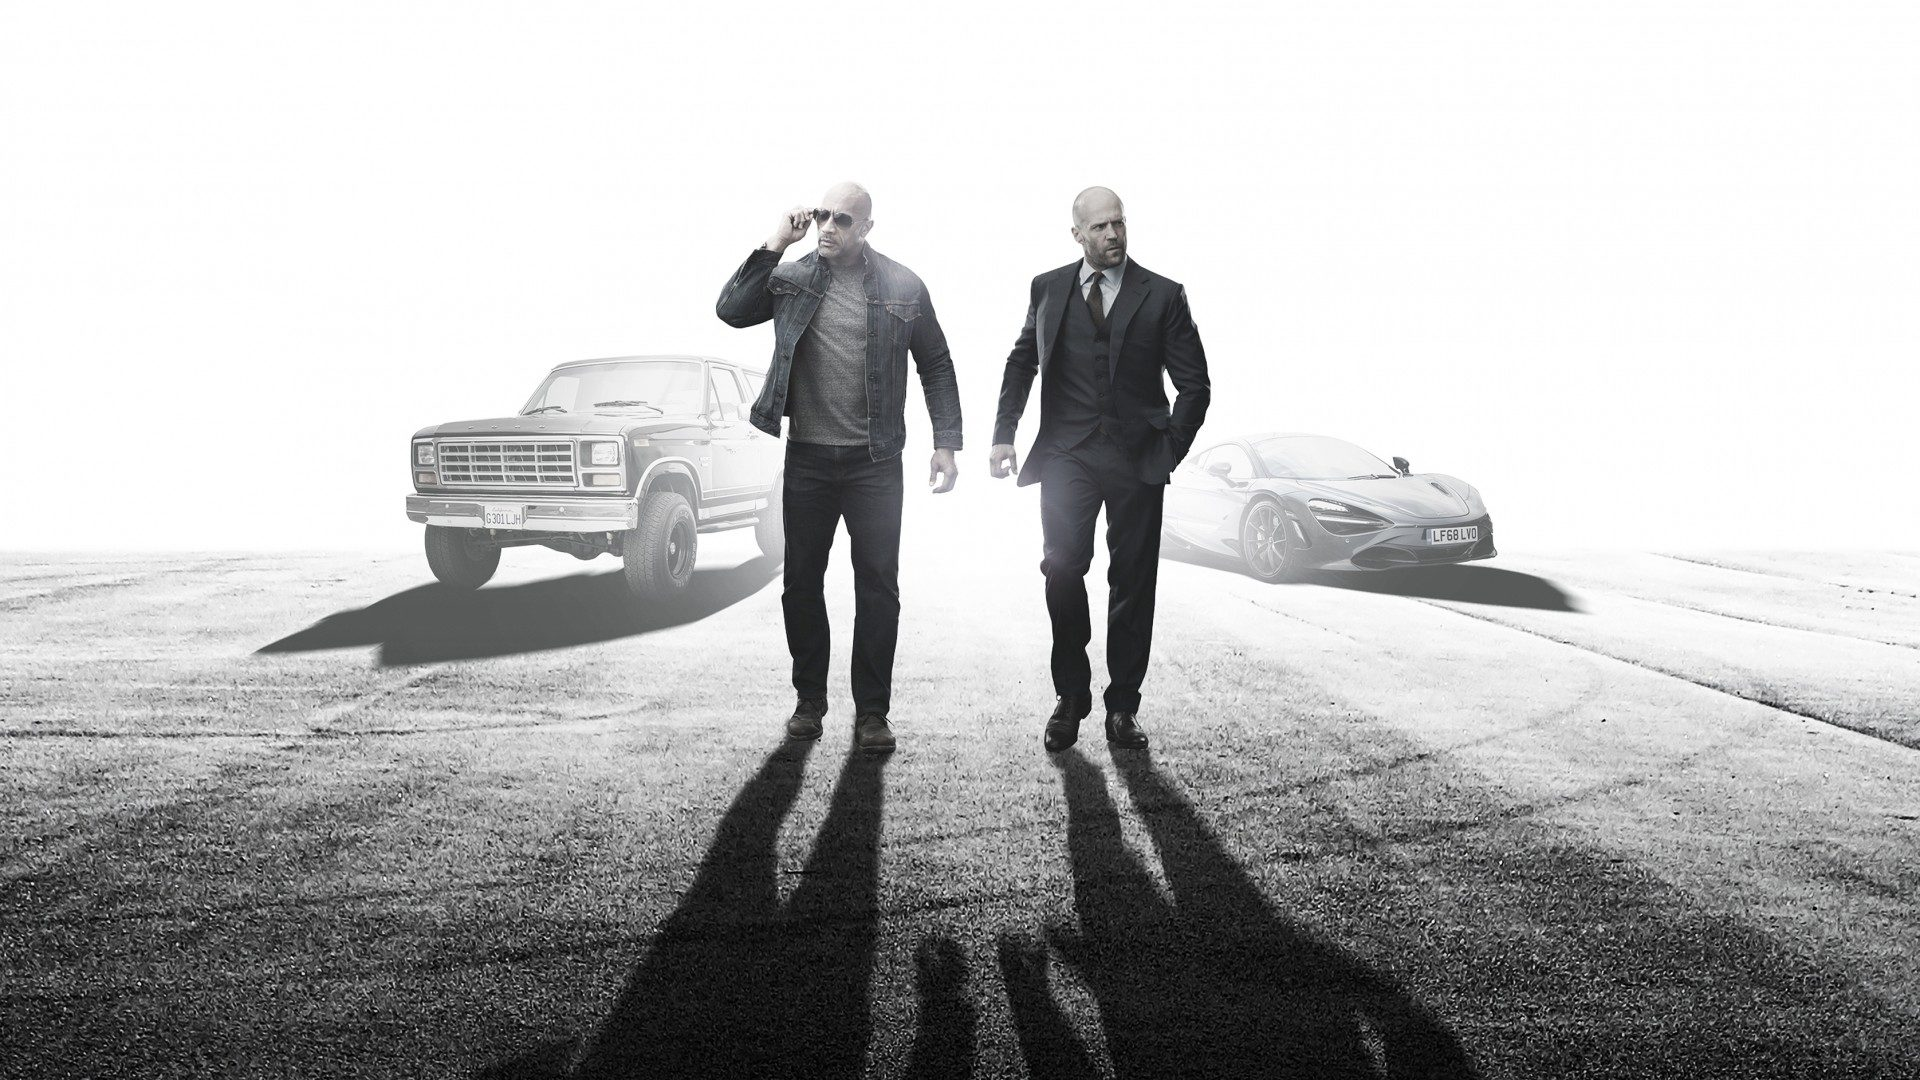 Hobbs And Shaw 2 Release Date Relation To Fast And Furious 9